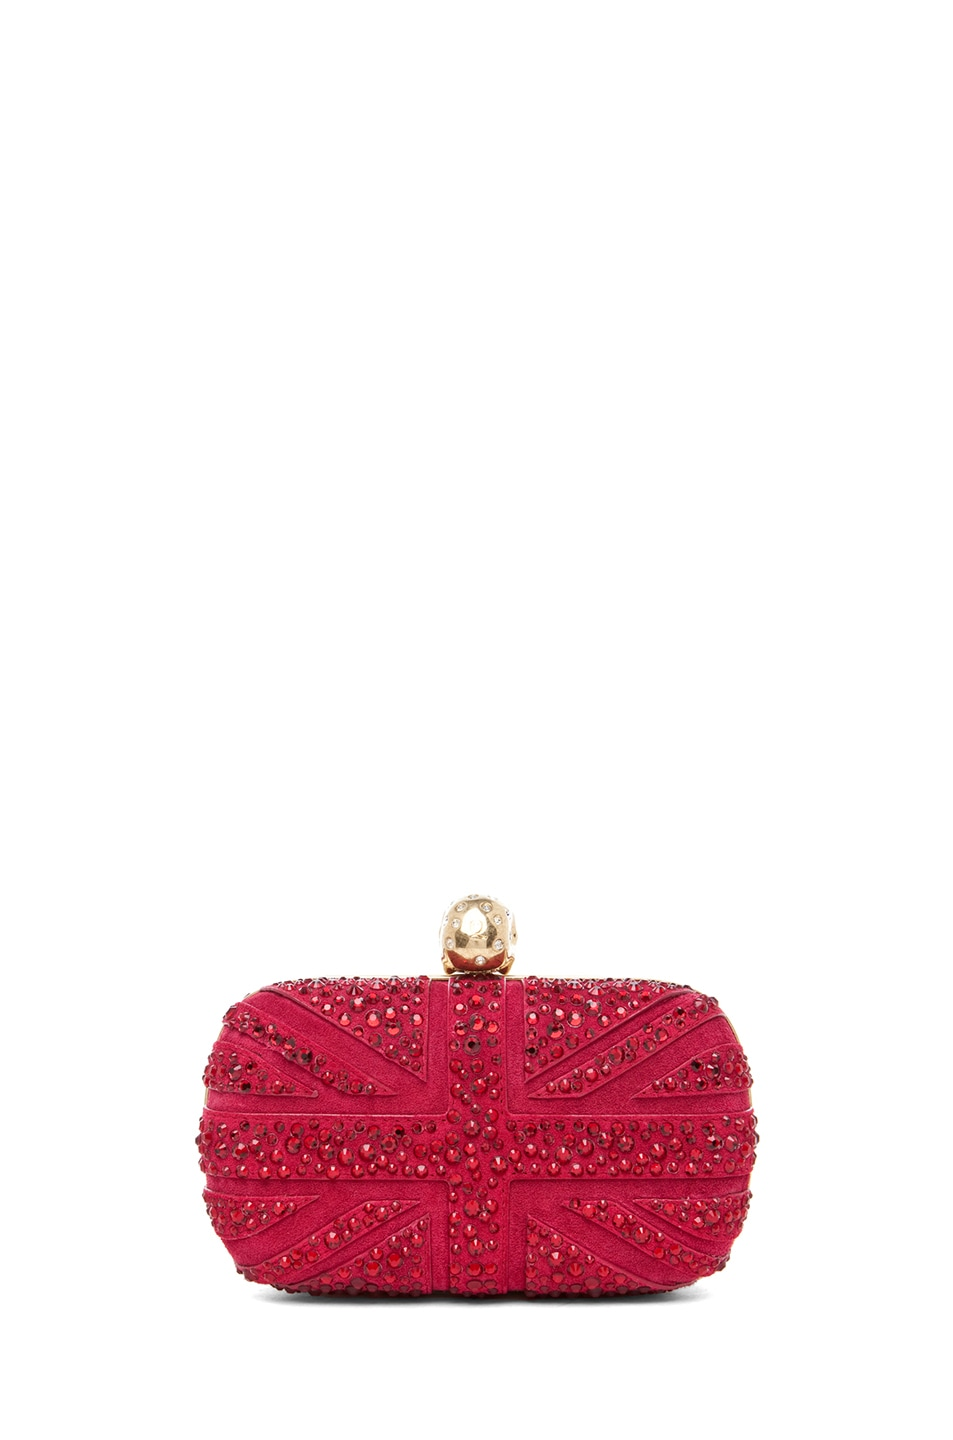 Image 2 of Alexander McQueen Britannia Skull Box Clutch in Dark Cherry